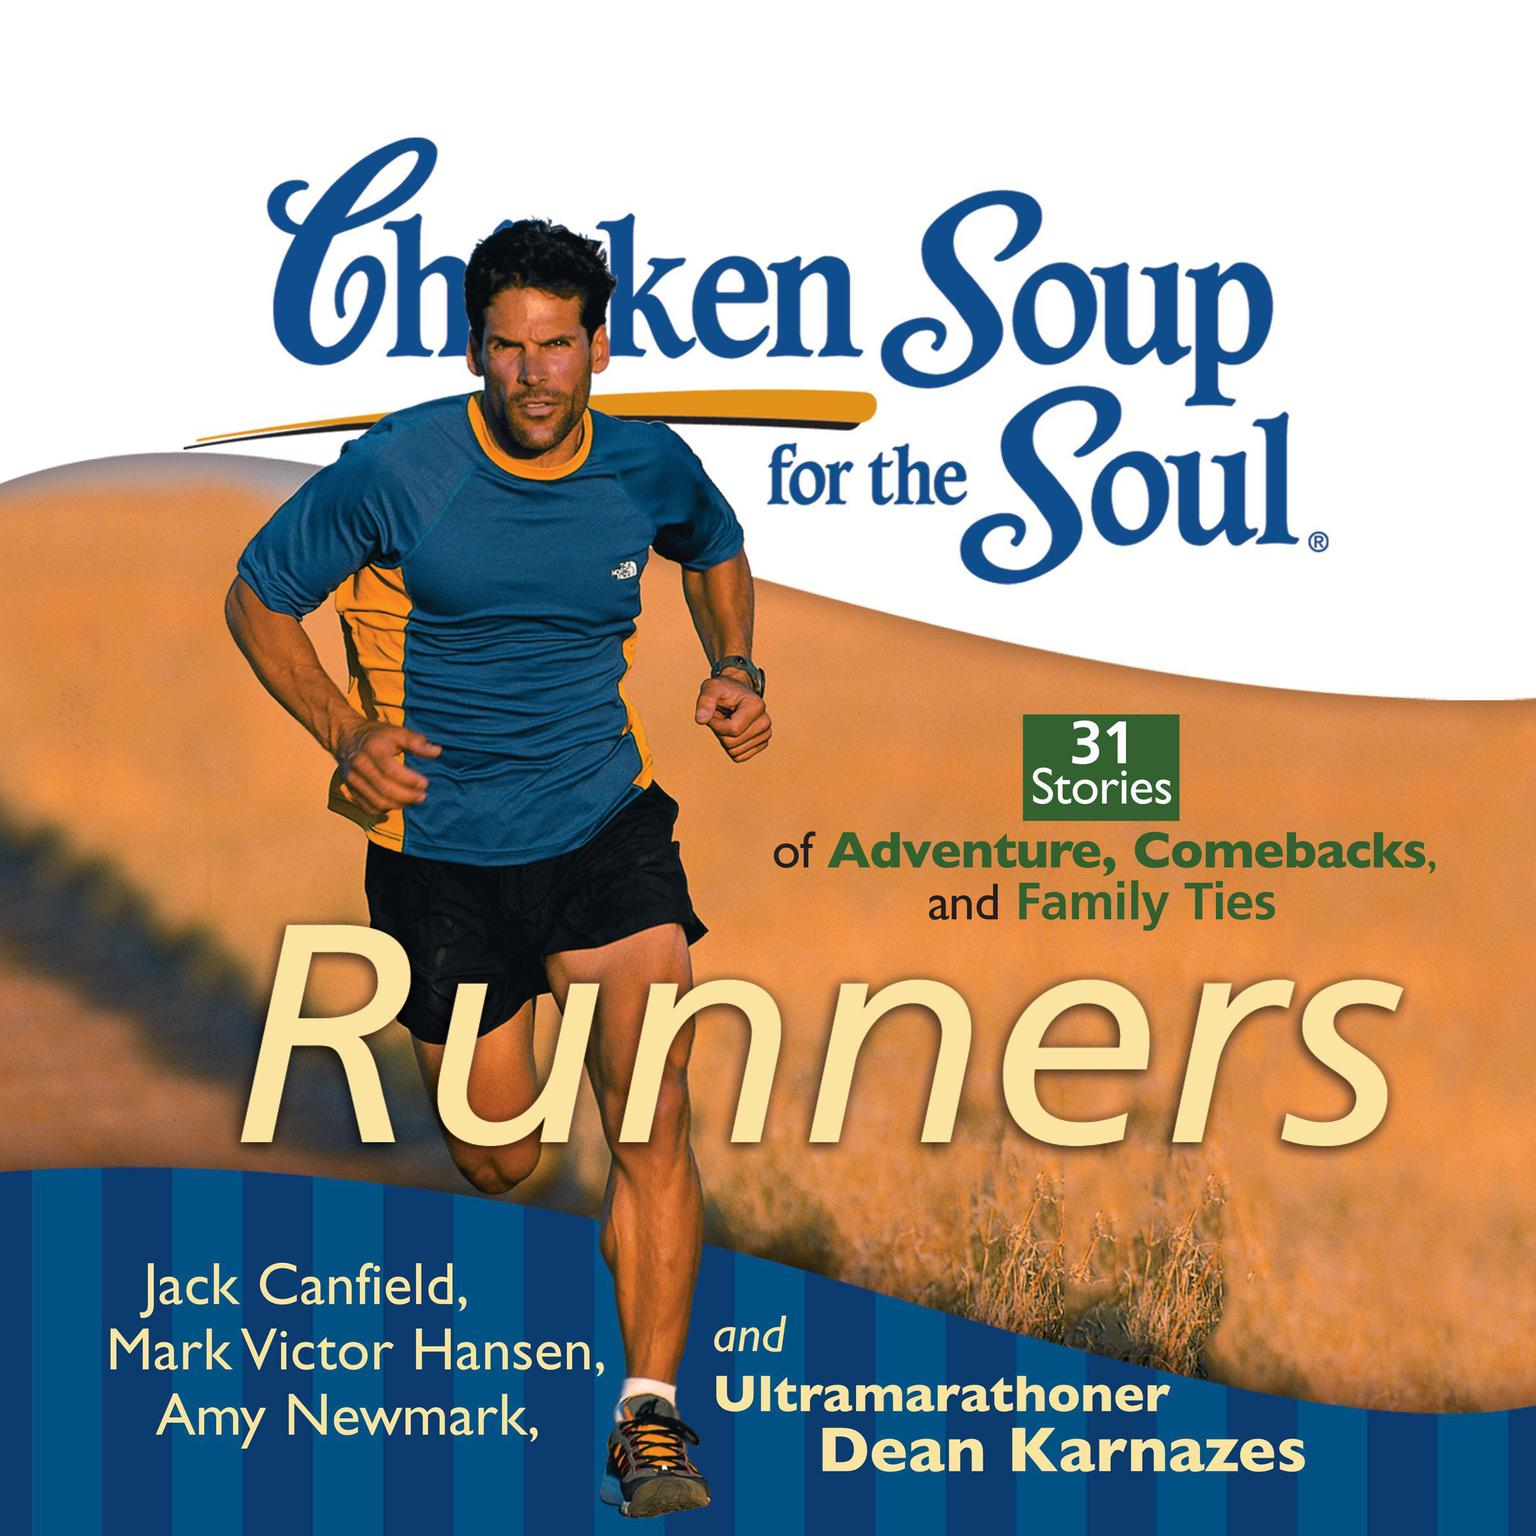 Printable Chicken Soup for the Soul: Runners - 31 Stories of Adventure, Comebacks, and Family Ties Audiobook Cover Art